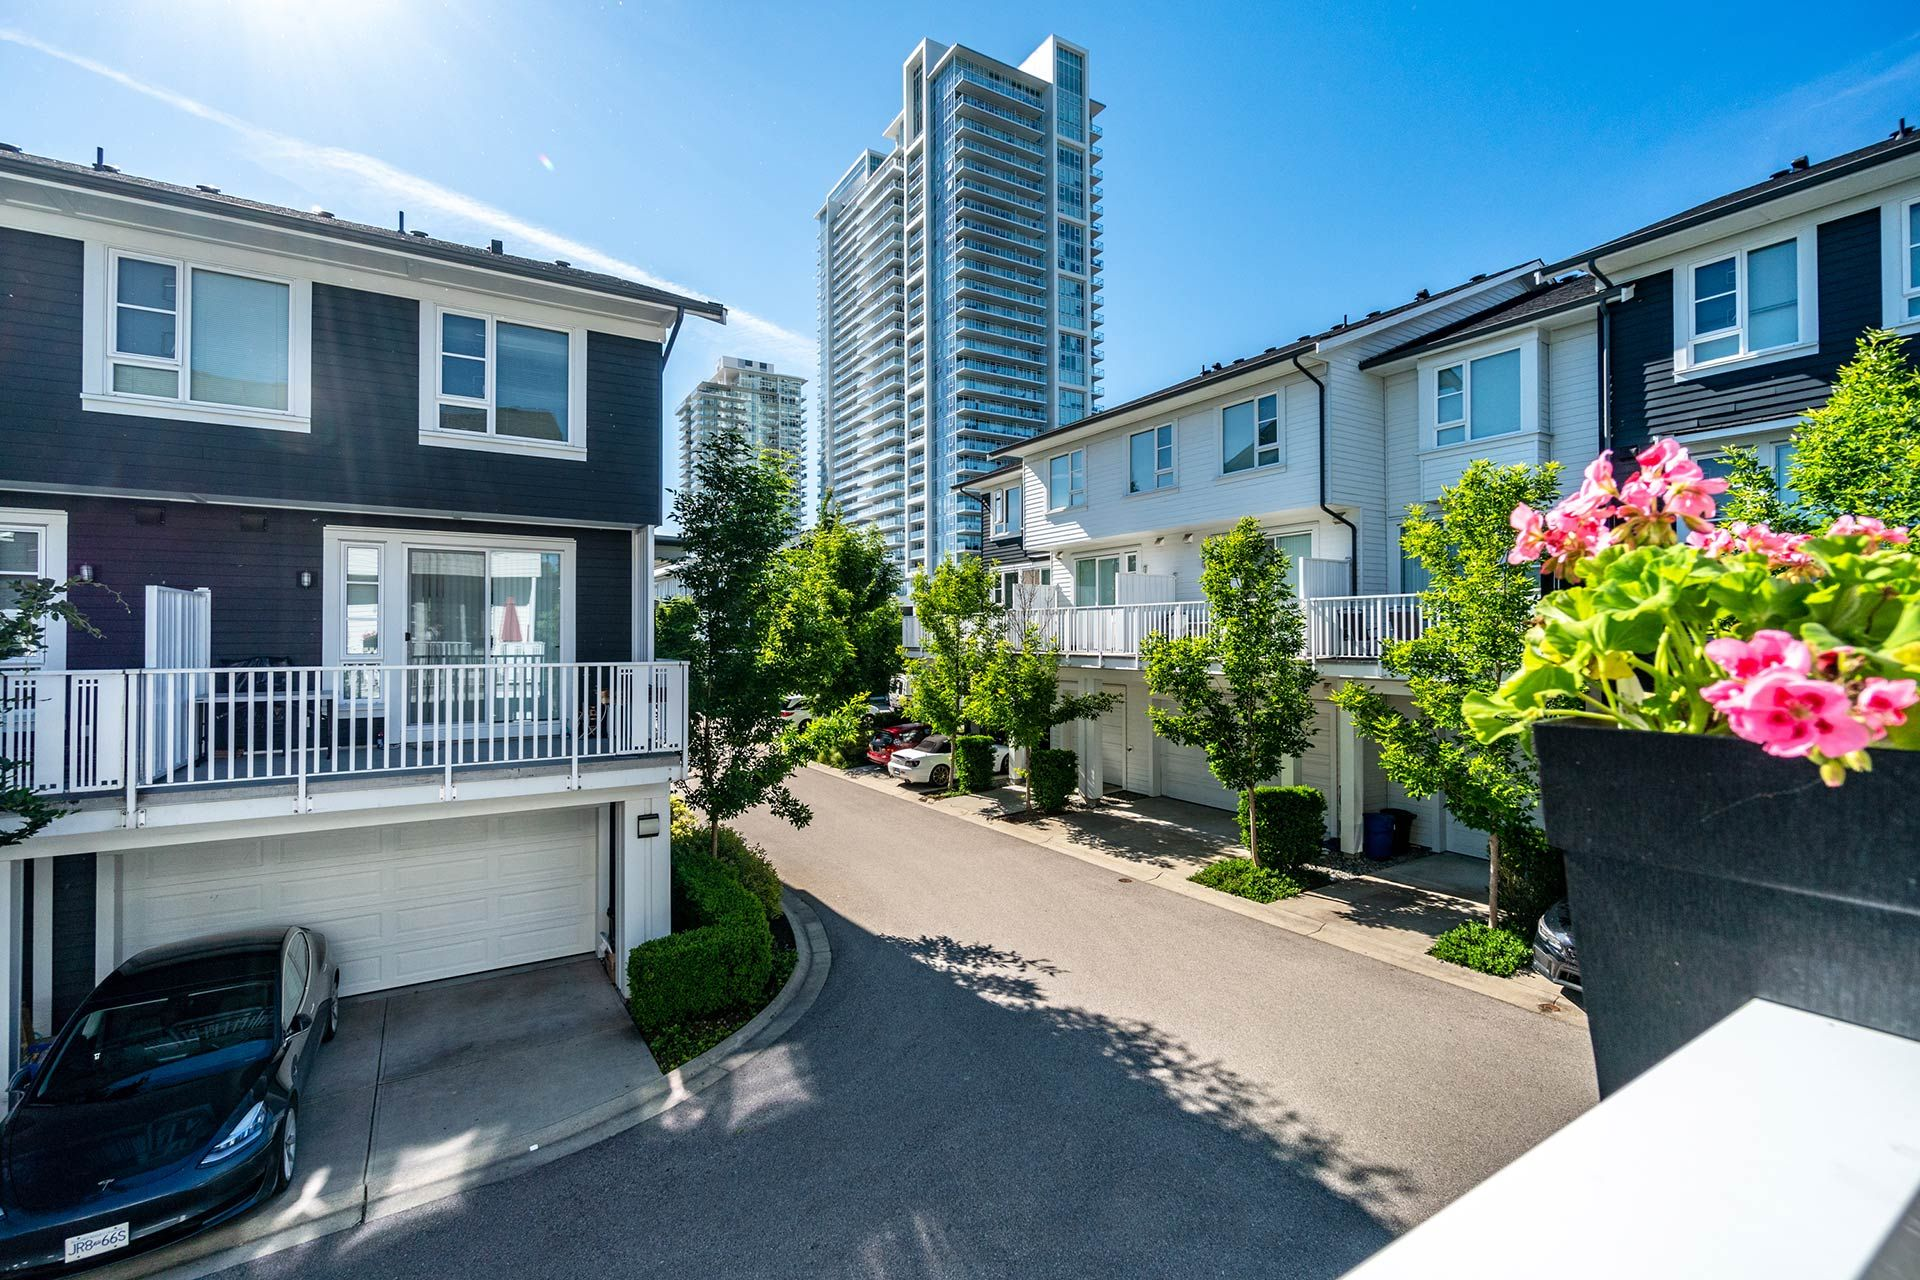 """Photo 23: Photos: 154 548 FOSTER Avenue in Coquitlam: Coquitlam West Townhouse for sale in """"BLACK + WHITE"""" : MLS®# R2587208"""